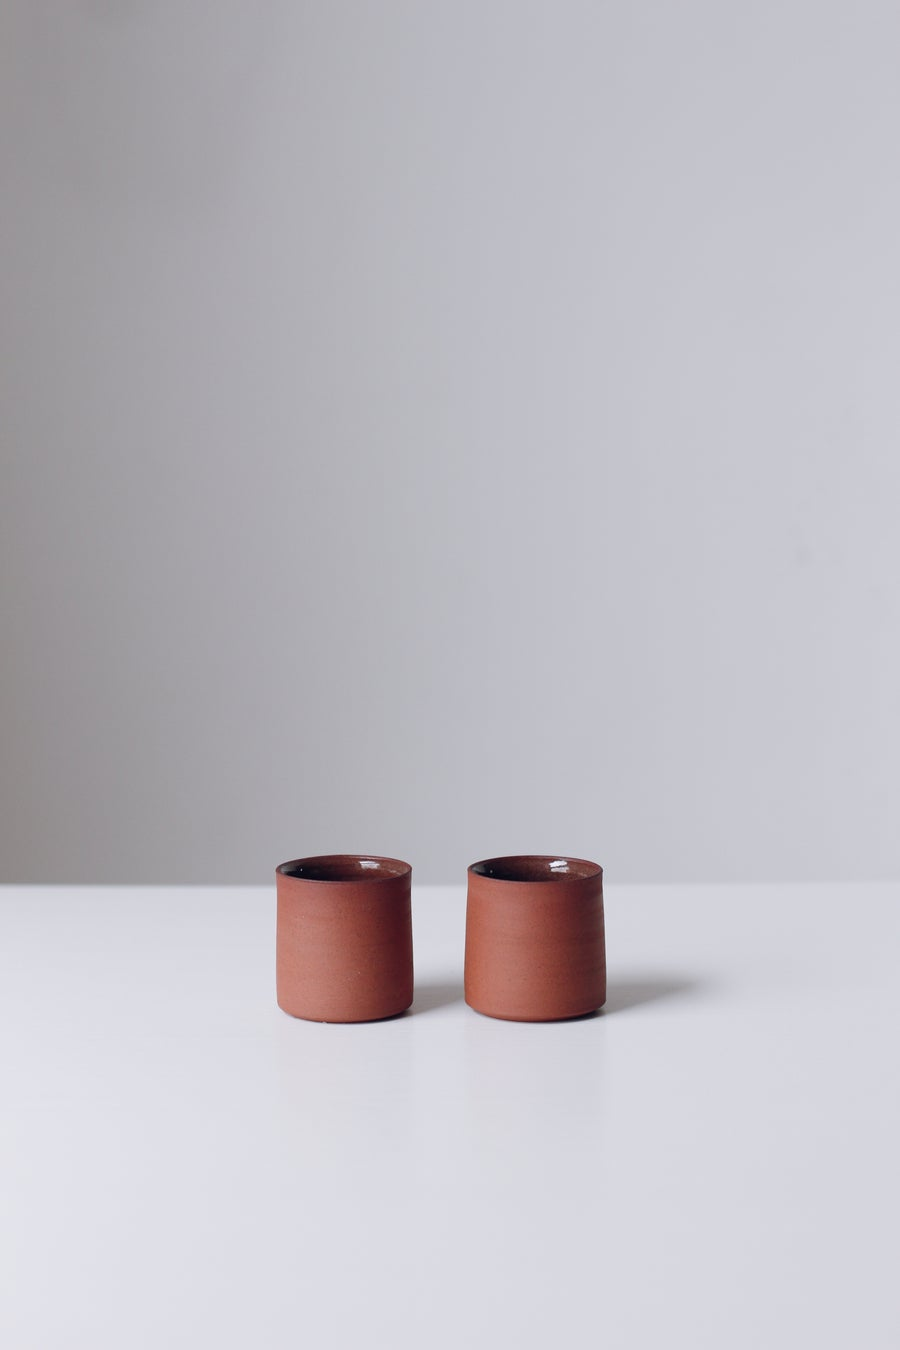 Image of Pair of Terracotta Espresso cups